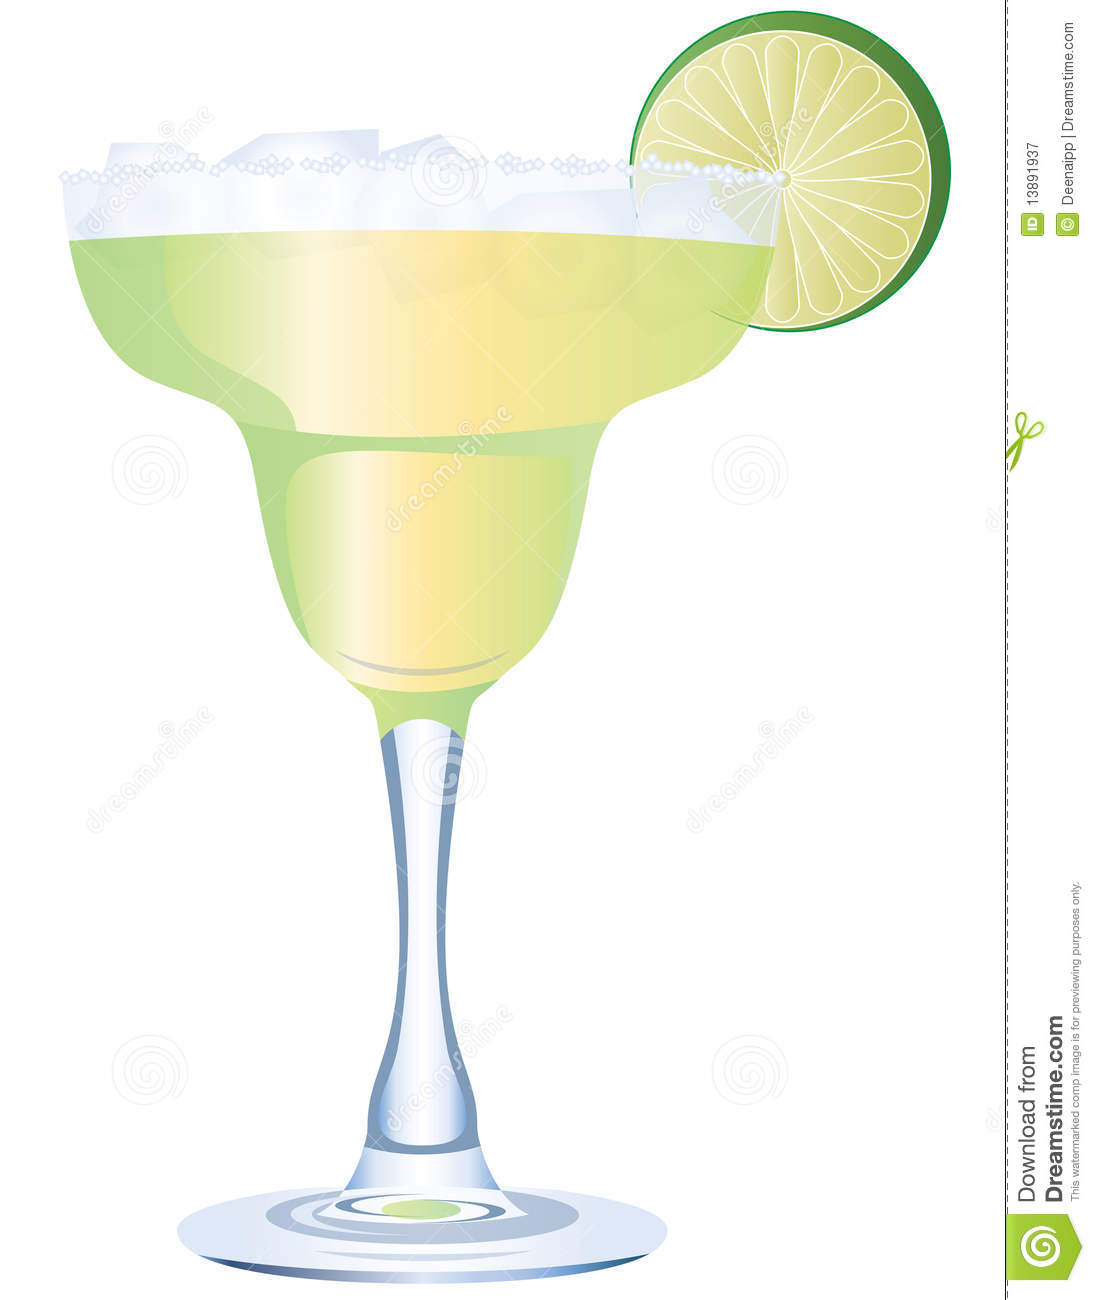 Margarita stock vector. Illustration of cocktail, mexica ...